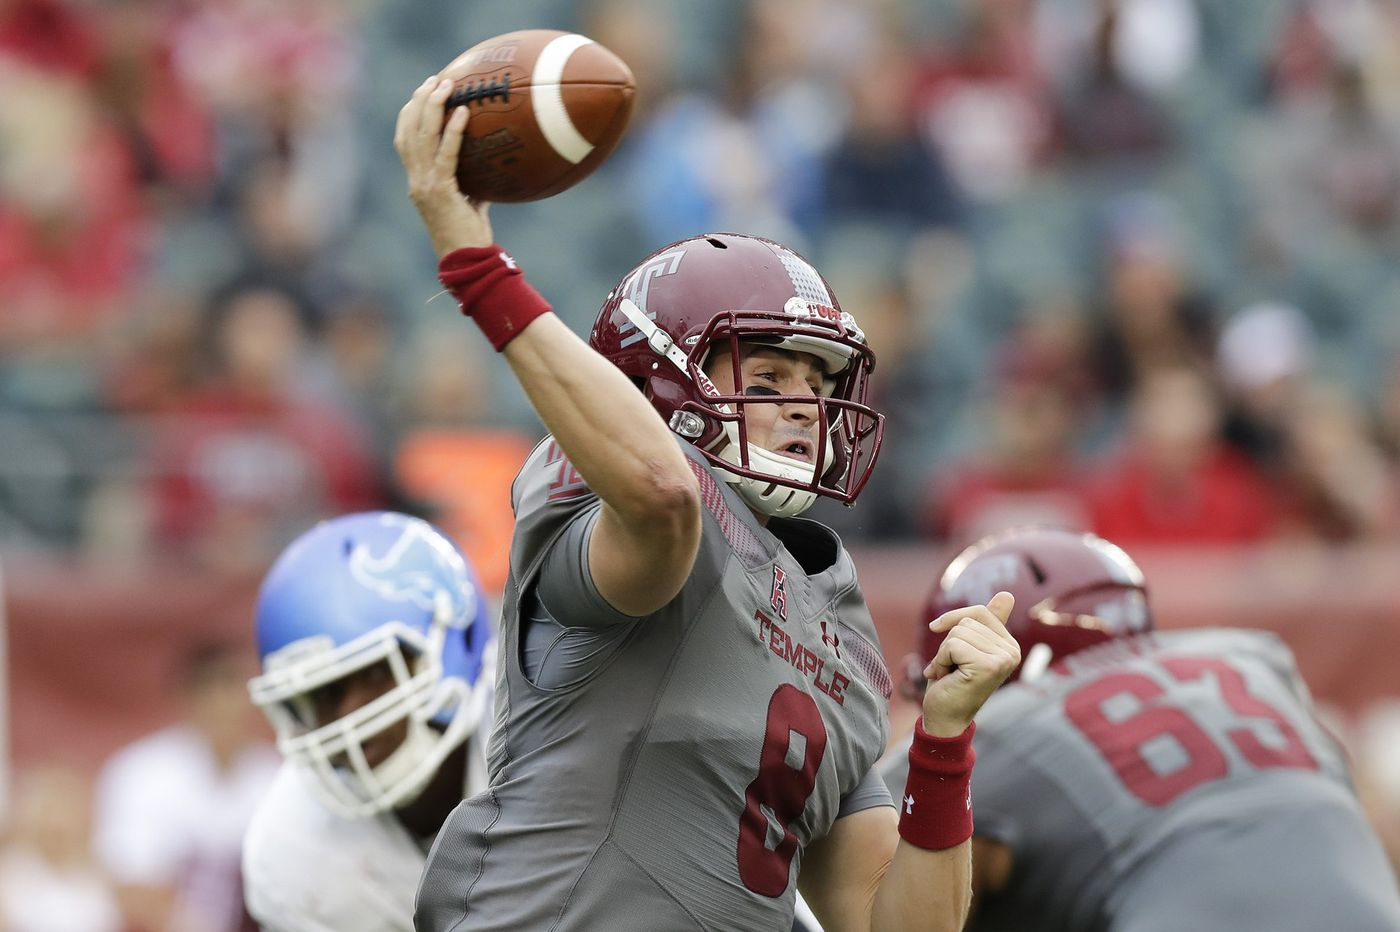 Temple coach Geoff Collins sticking by QB Frank Nutile after winless start